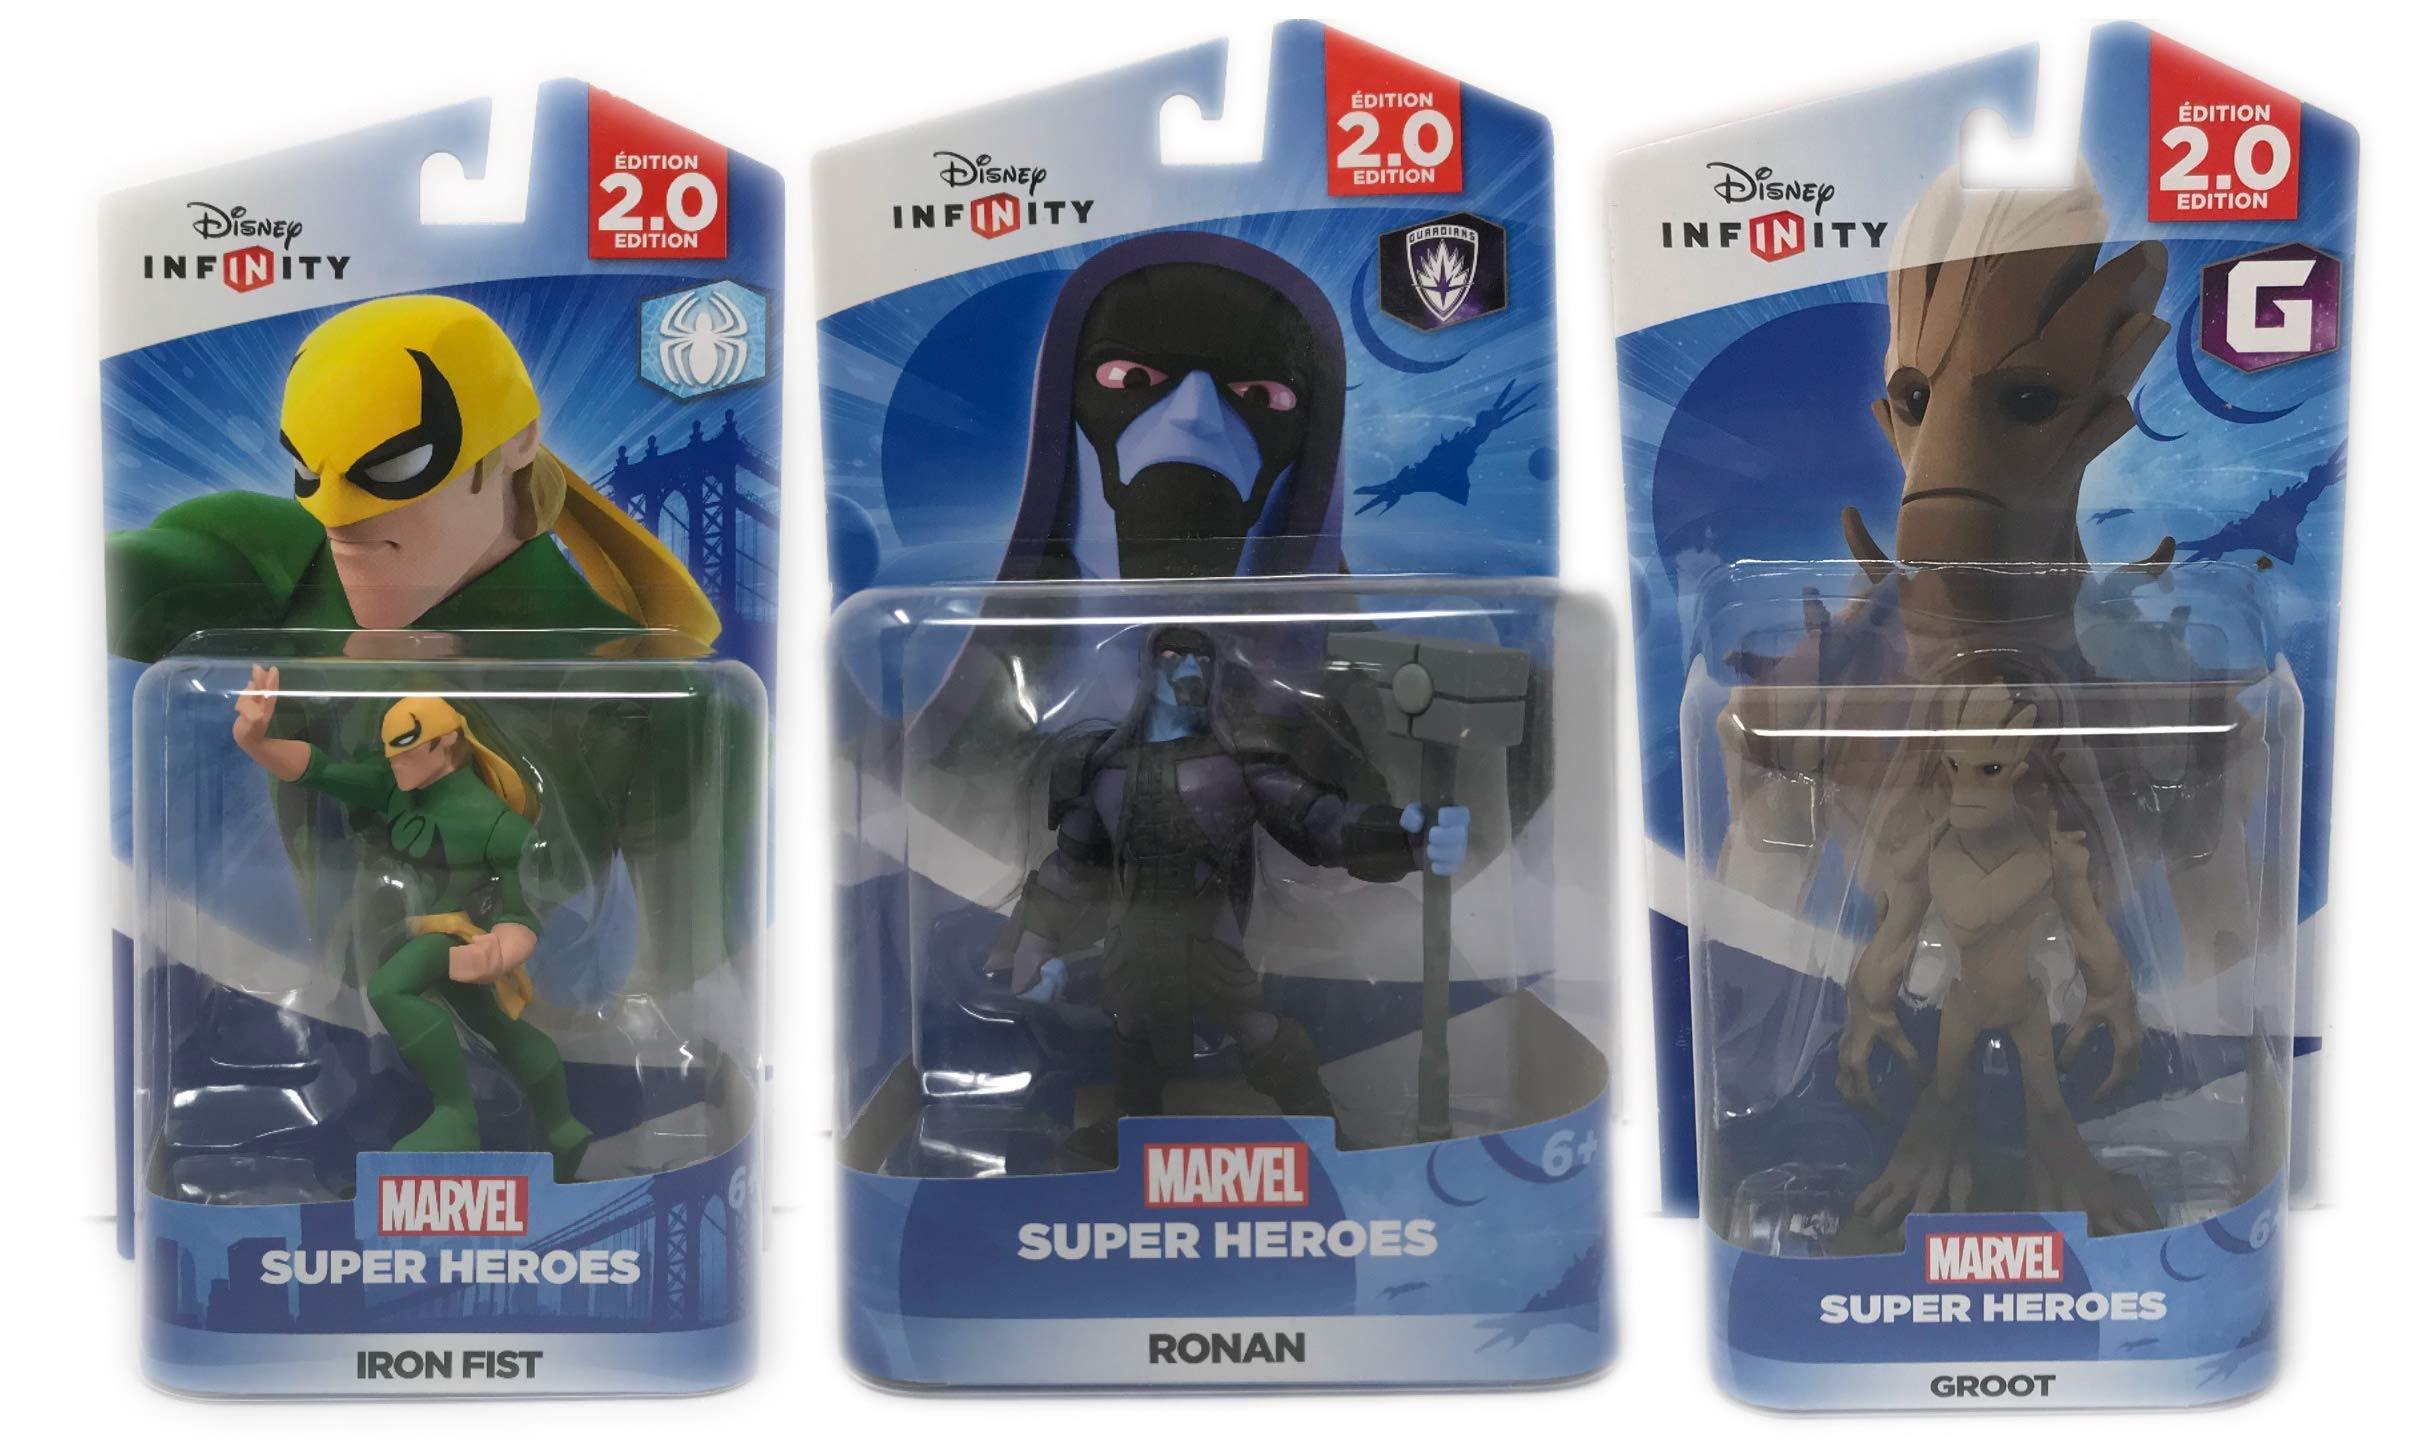 Disney Infinity: Heroes (2.0 Edition) Groot, Iron Fist & Ronan (2.0 Series) Guardians Of The Galaxy & Spider-Man Series - Not Machine Specific